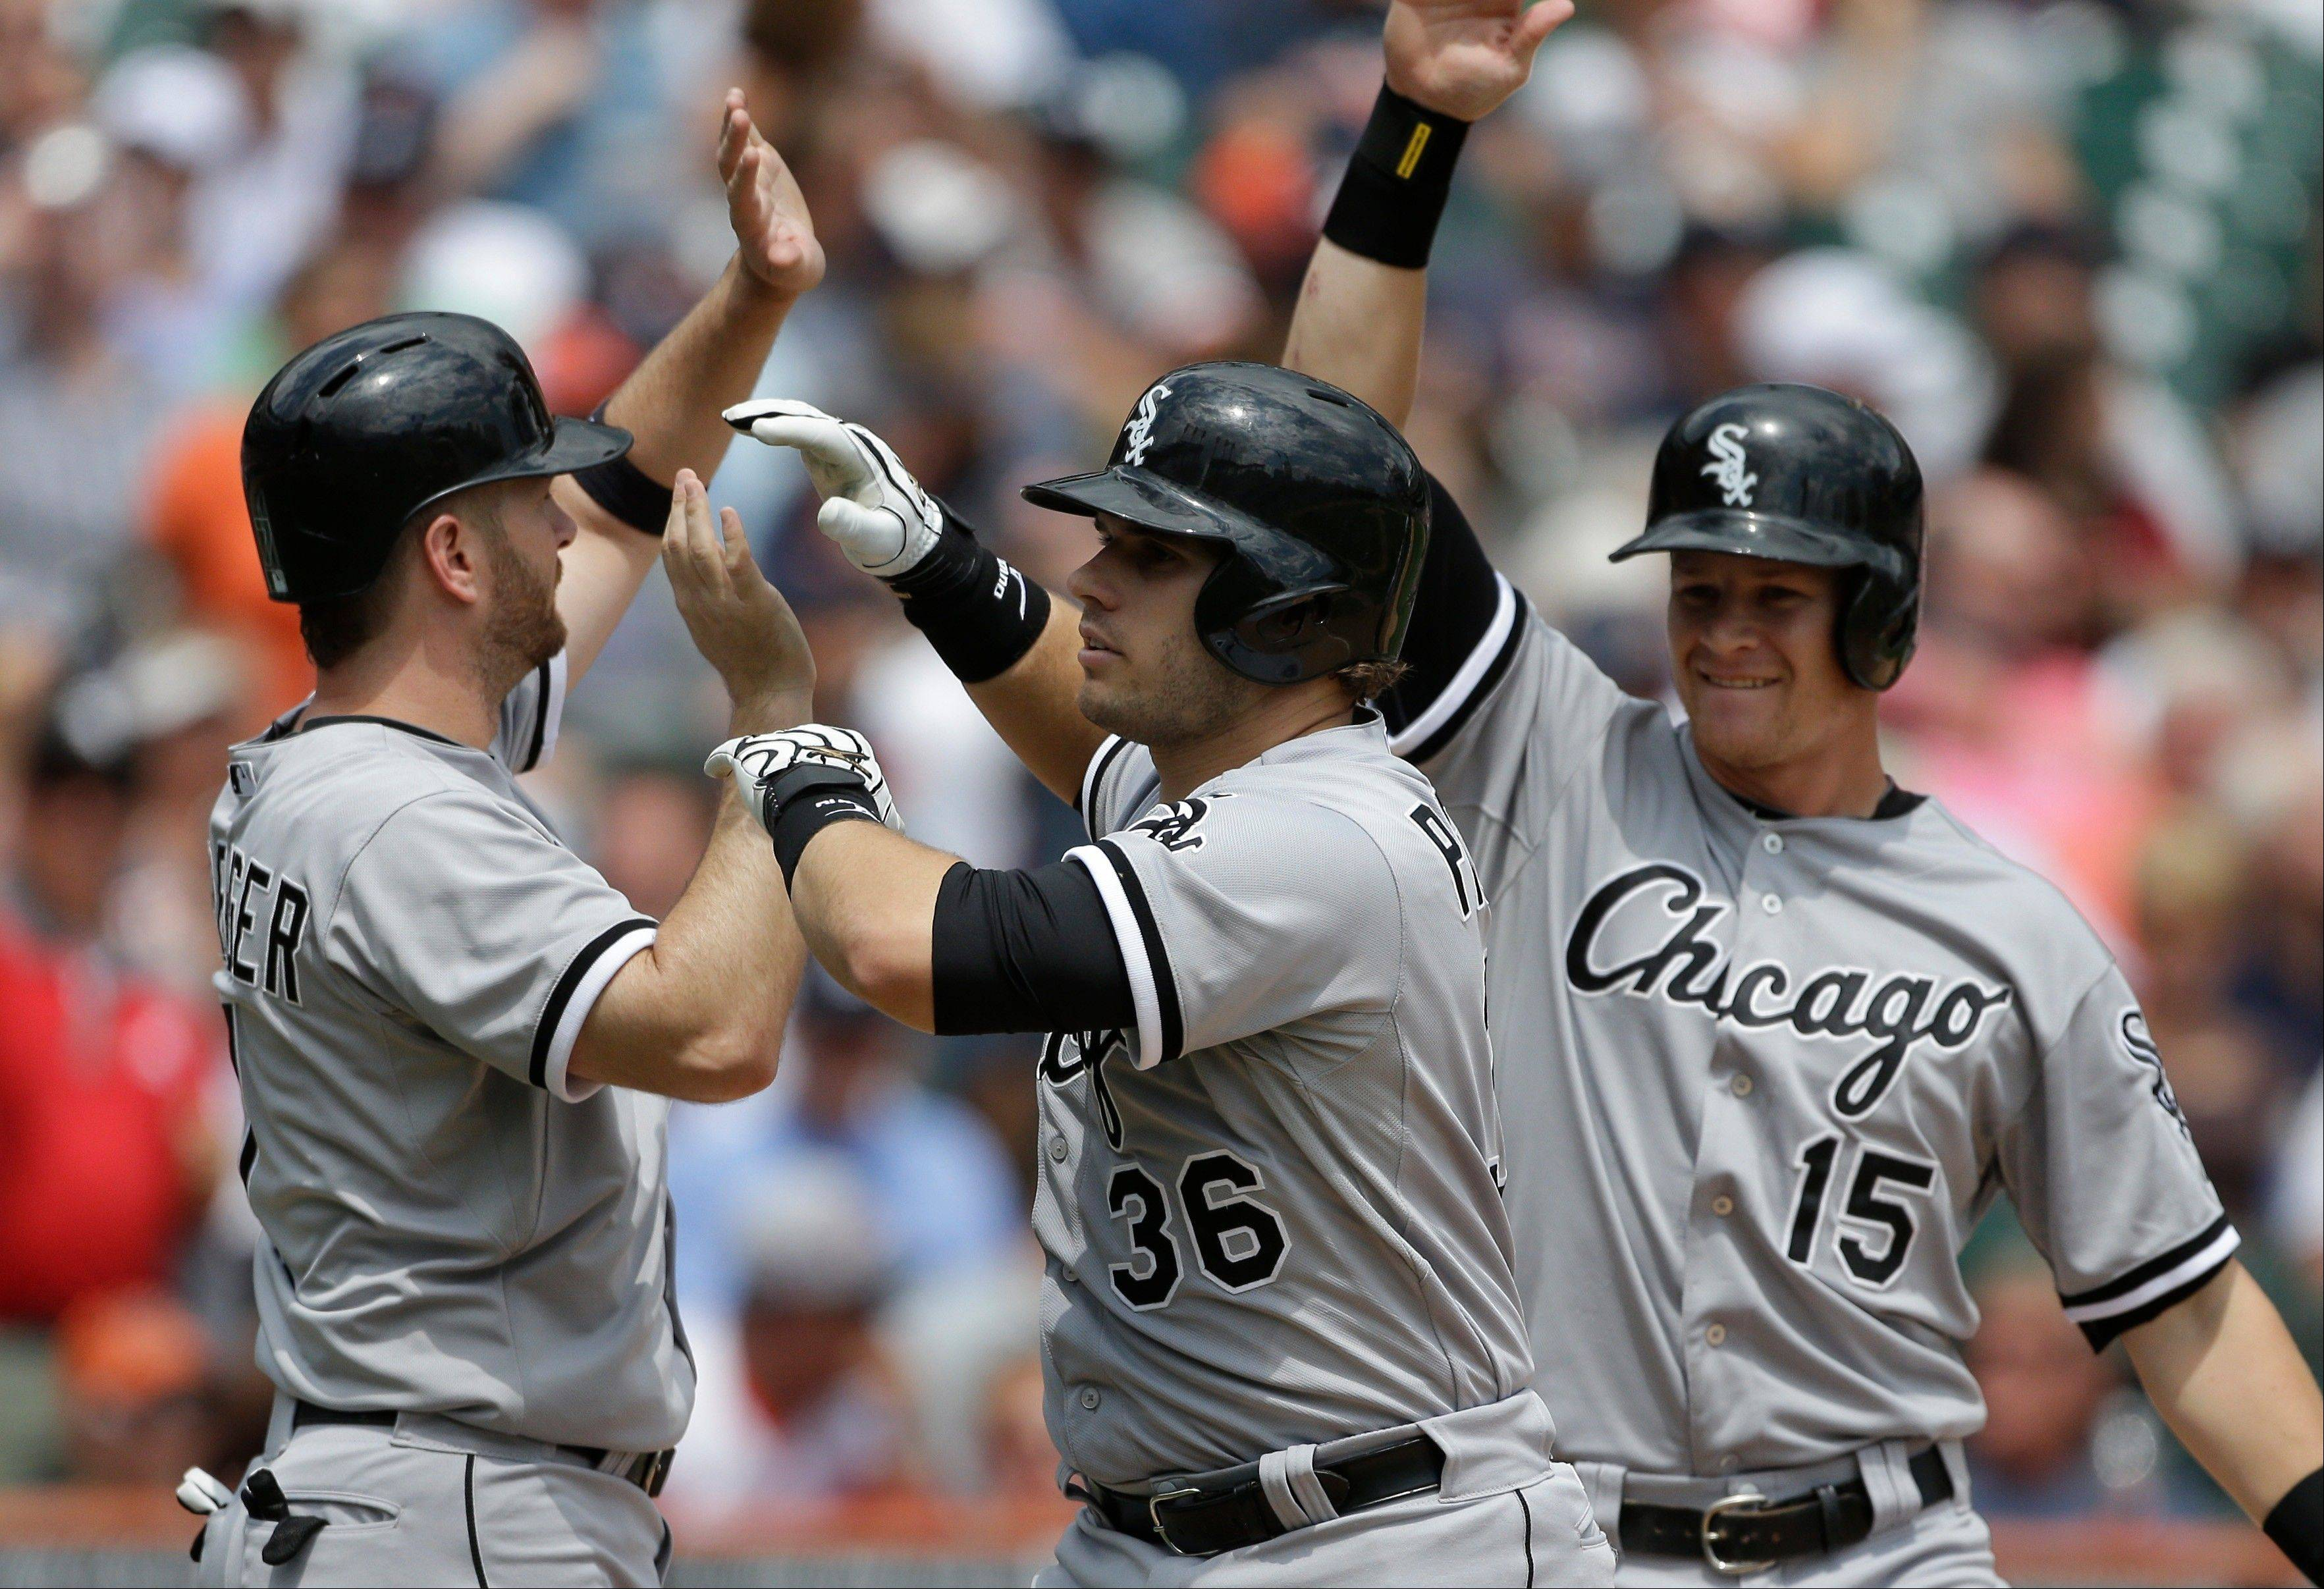 White Sox catcher Josh Phegley is congratulated by teammates Jeff Keppinger, left, and Gordon Beckham after his grand slam in the sixth inning of Thursday�s victory at Detroit. Phegley and Beckham are two players who figure to stay put on the South Side.